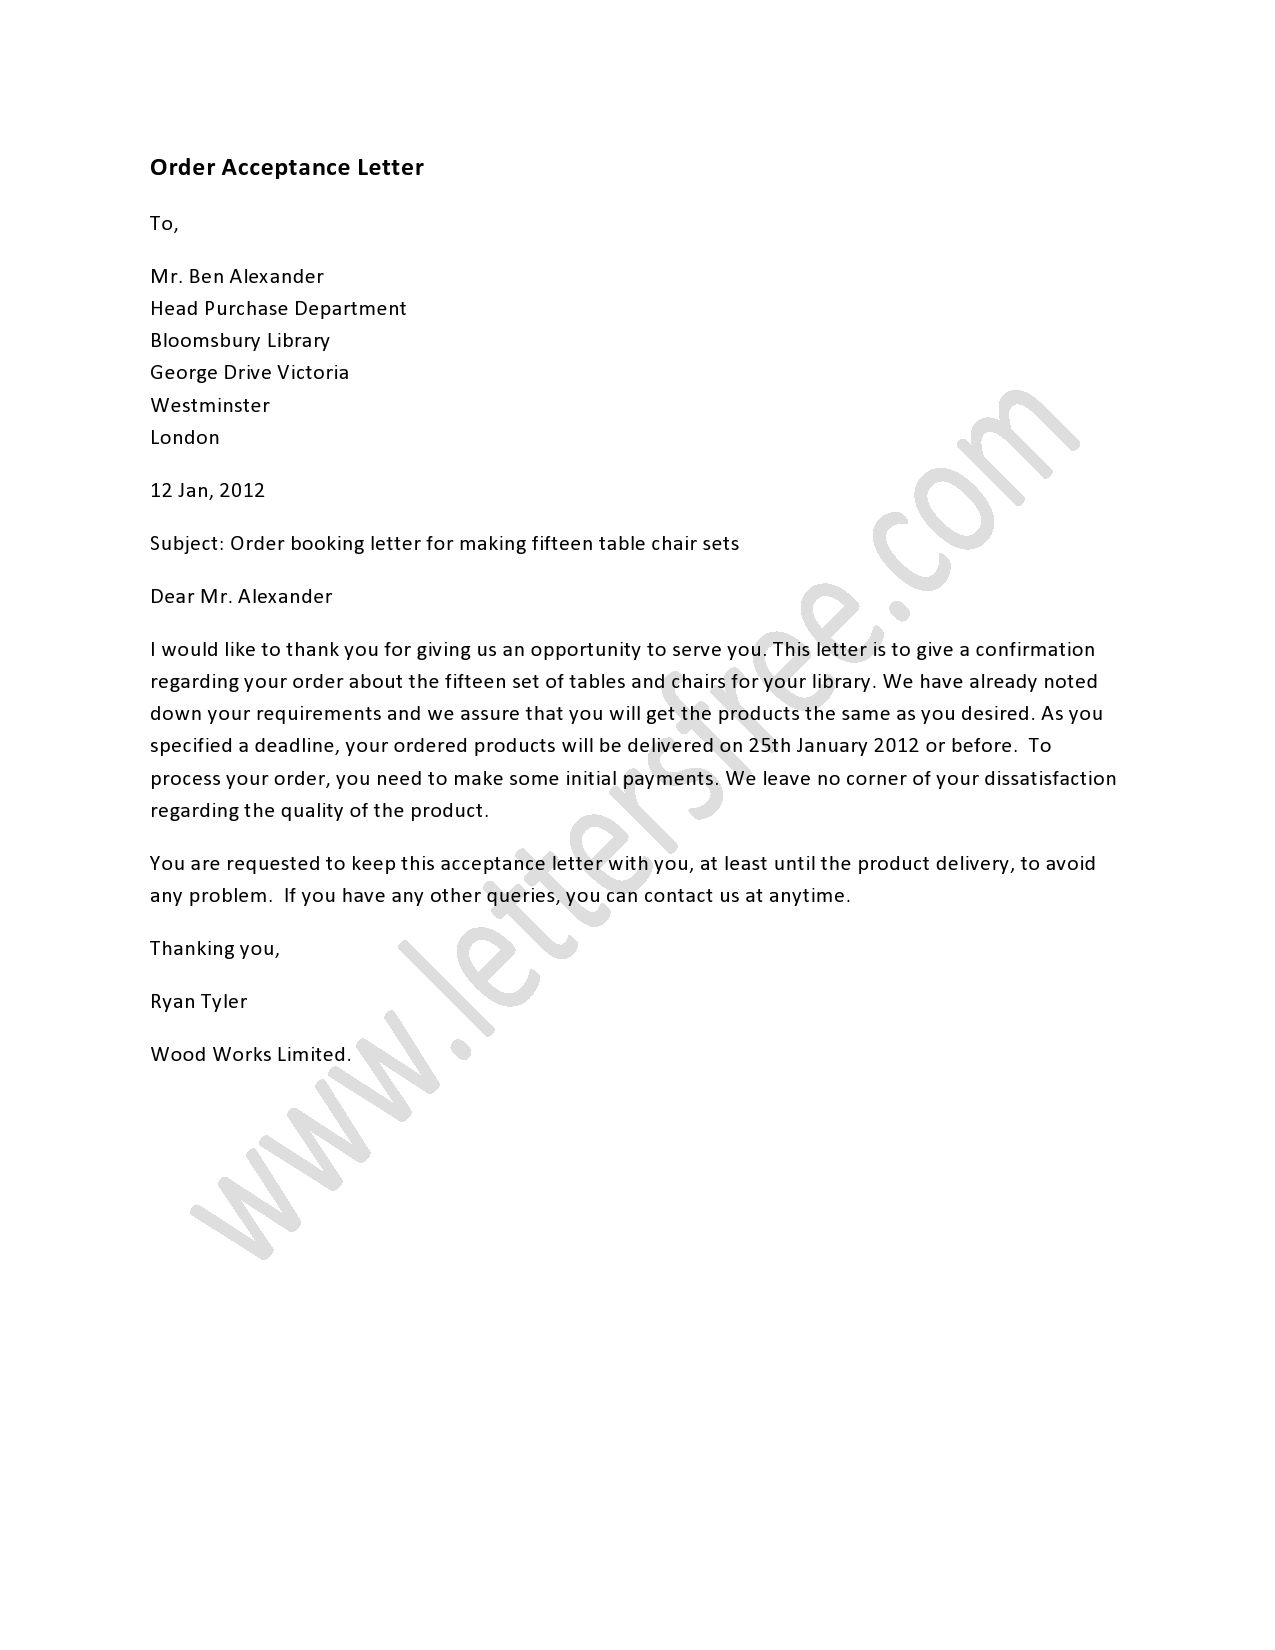 An Order Acceptance Letter Is Written To Inform A Company About